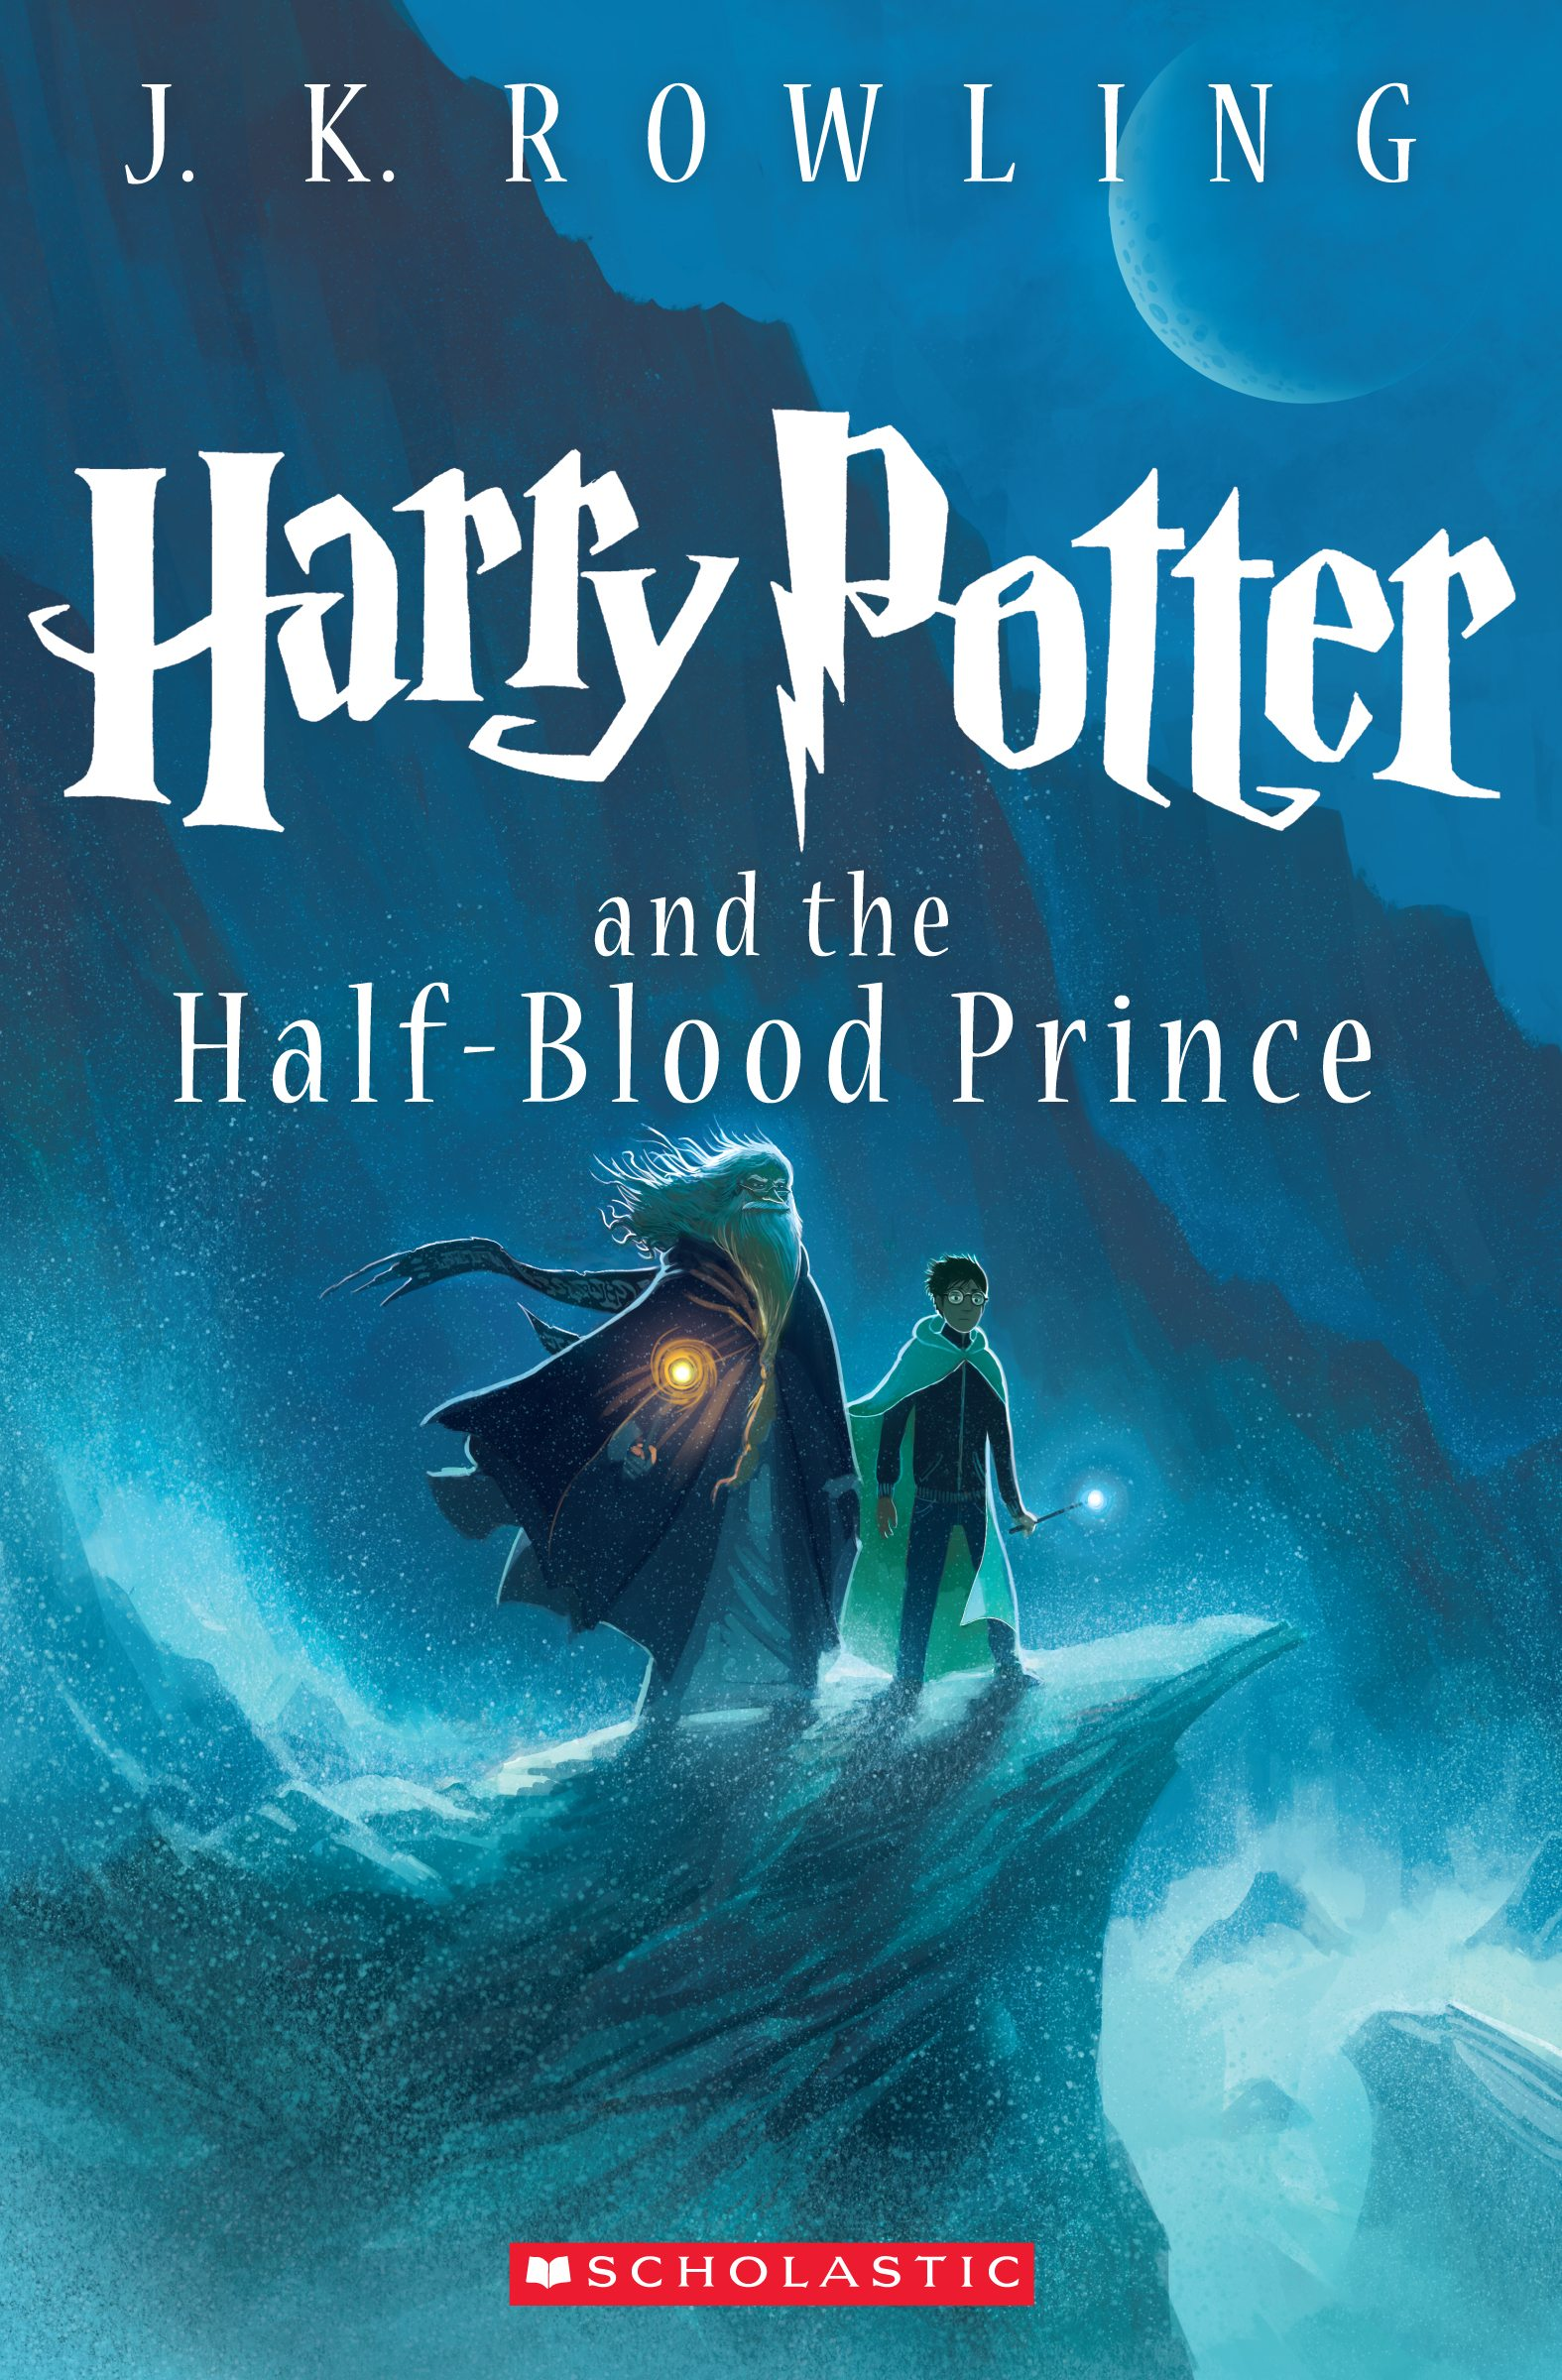 New Covers For Harry Potter Books 5 And 6